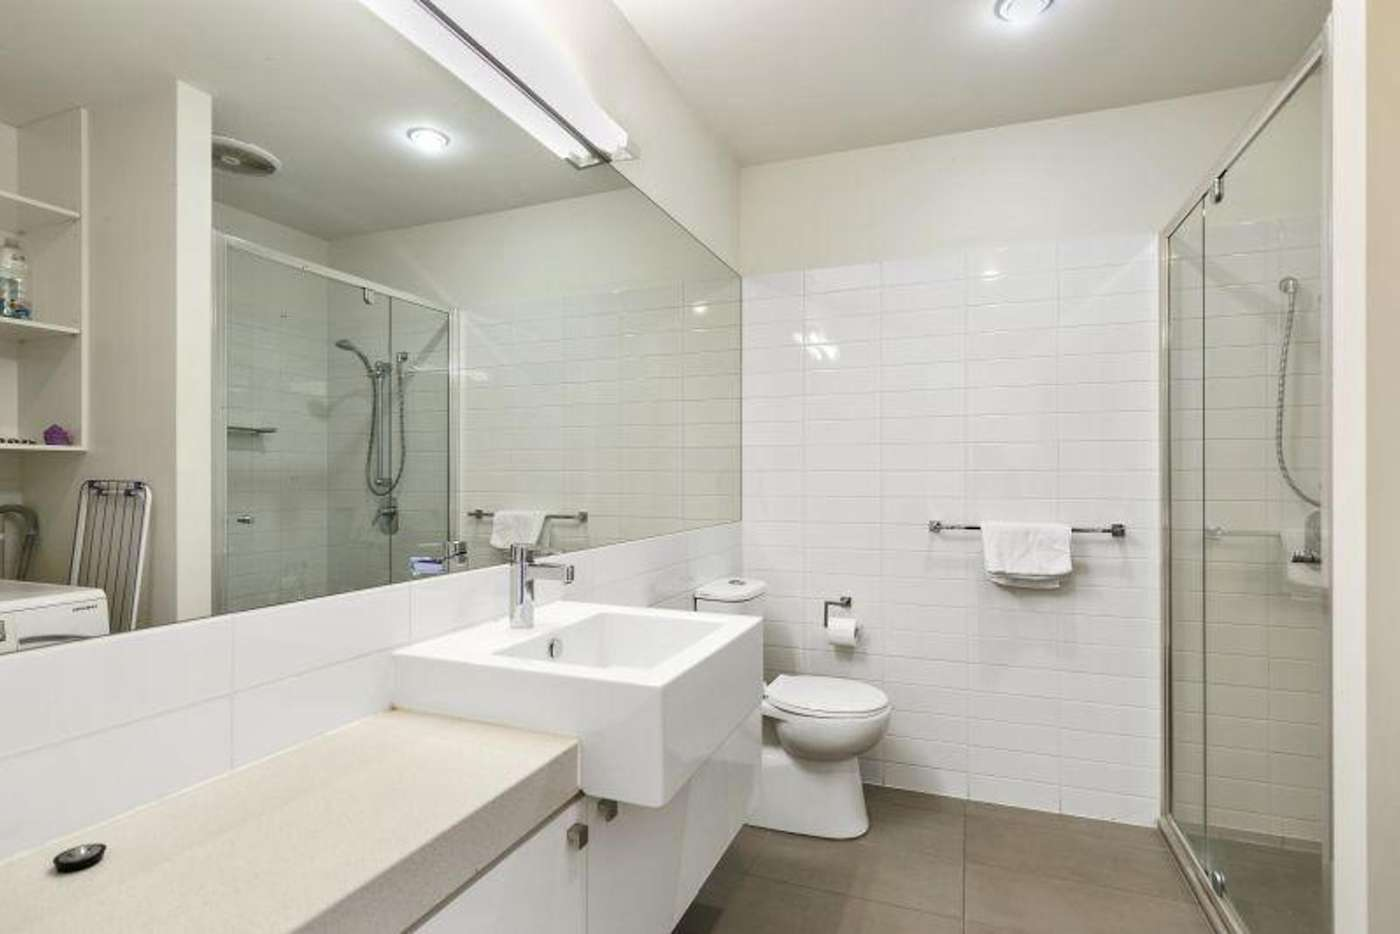 Sixth view of Homely apartment listing, 6/89 GREAT OCEAN Road, Aireys Inlet VIC 3231